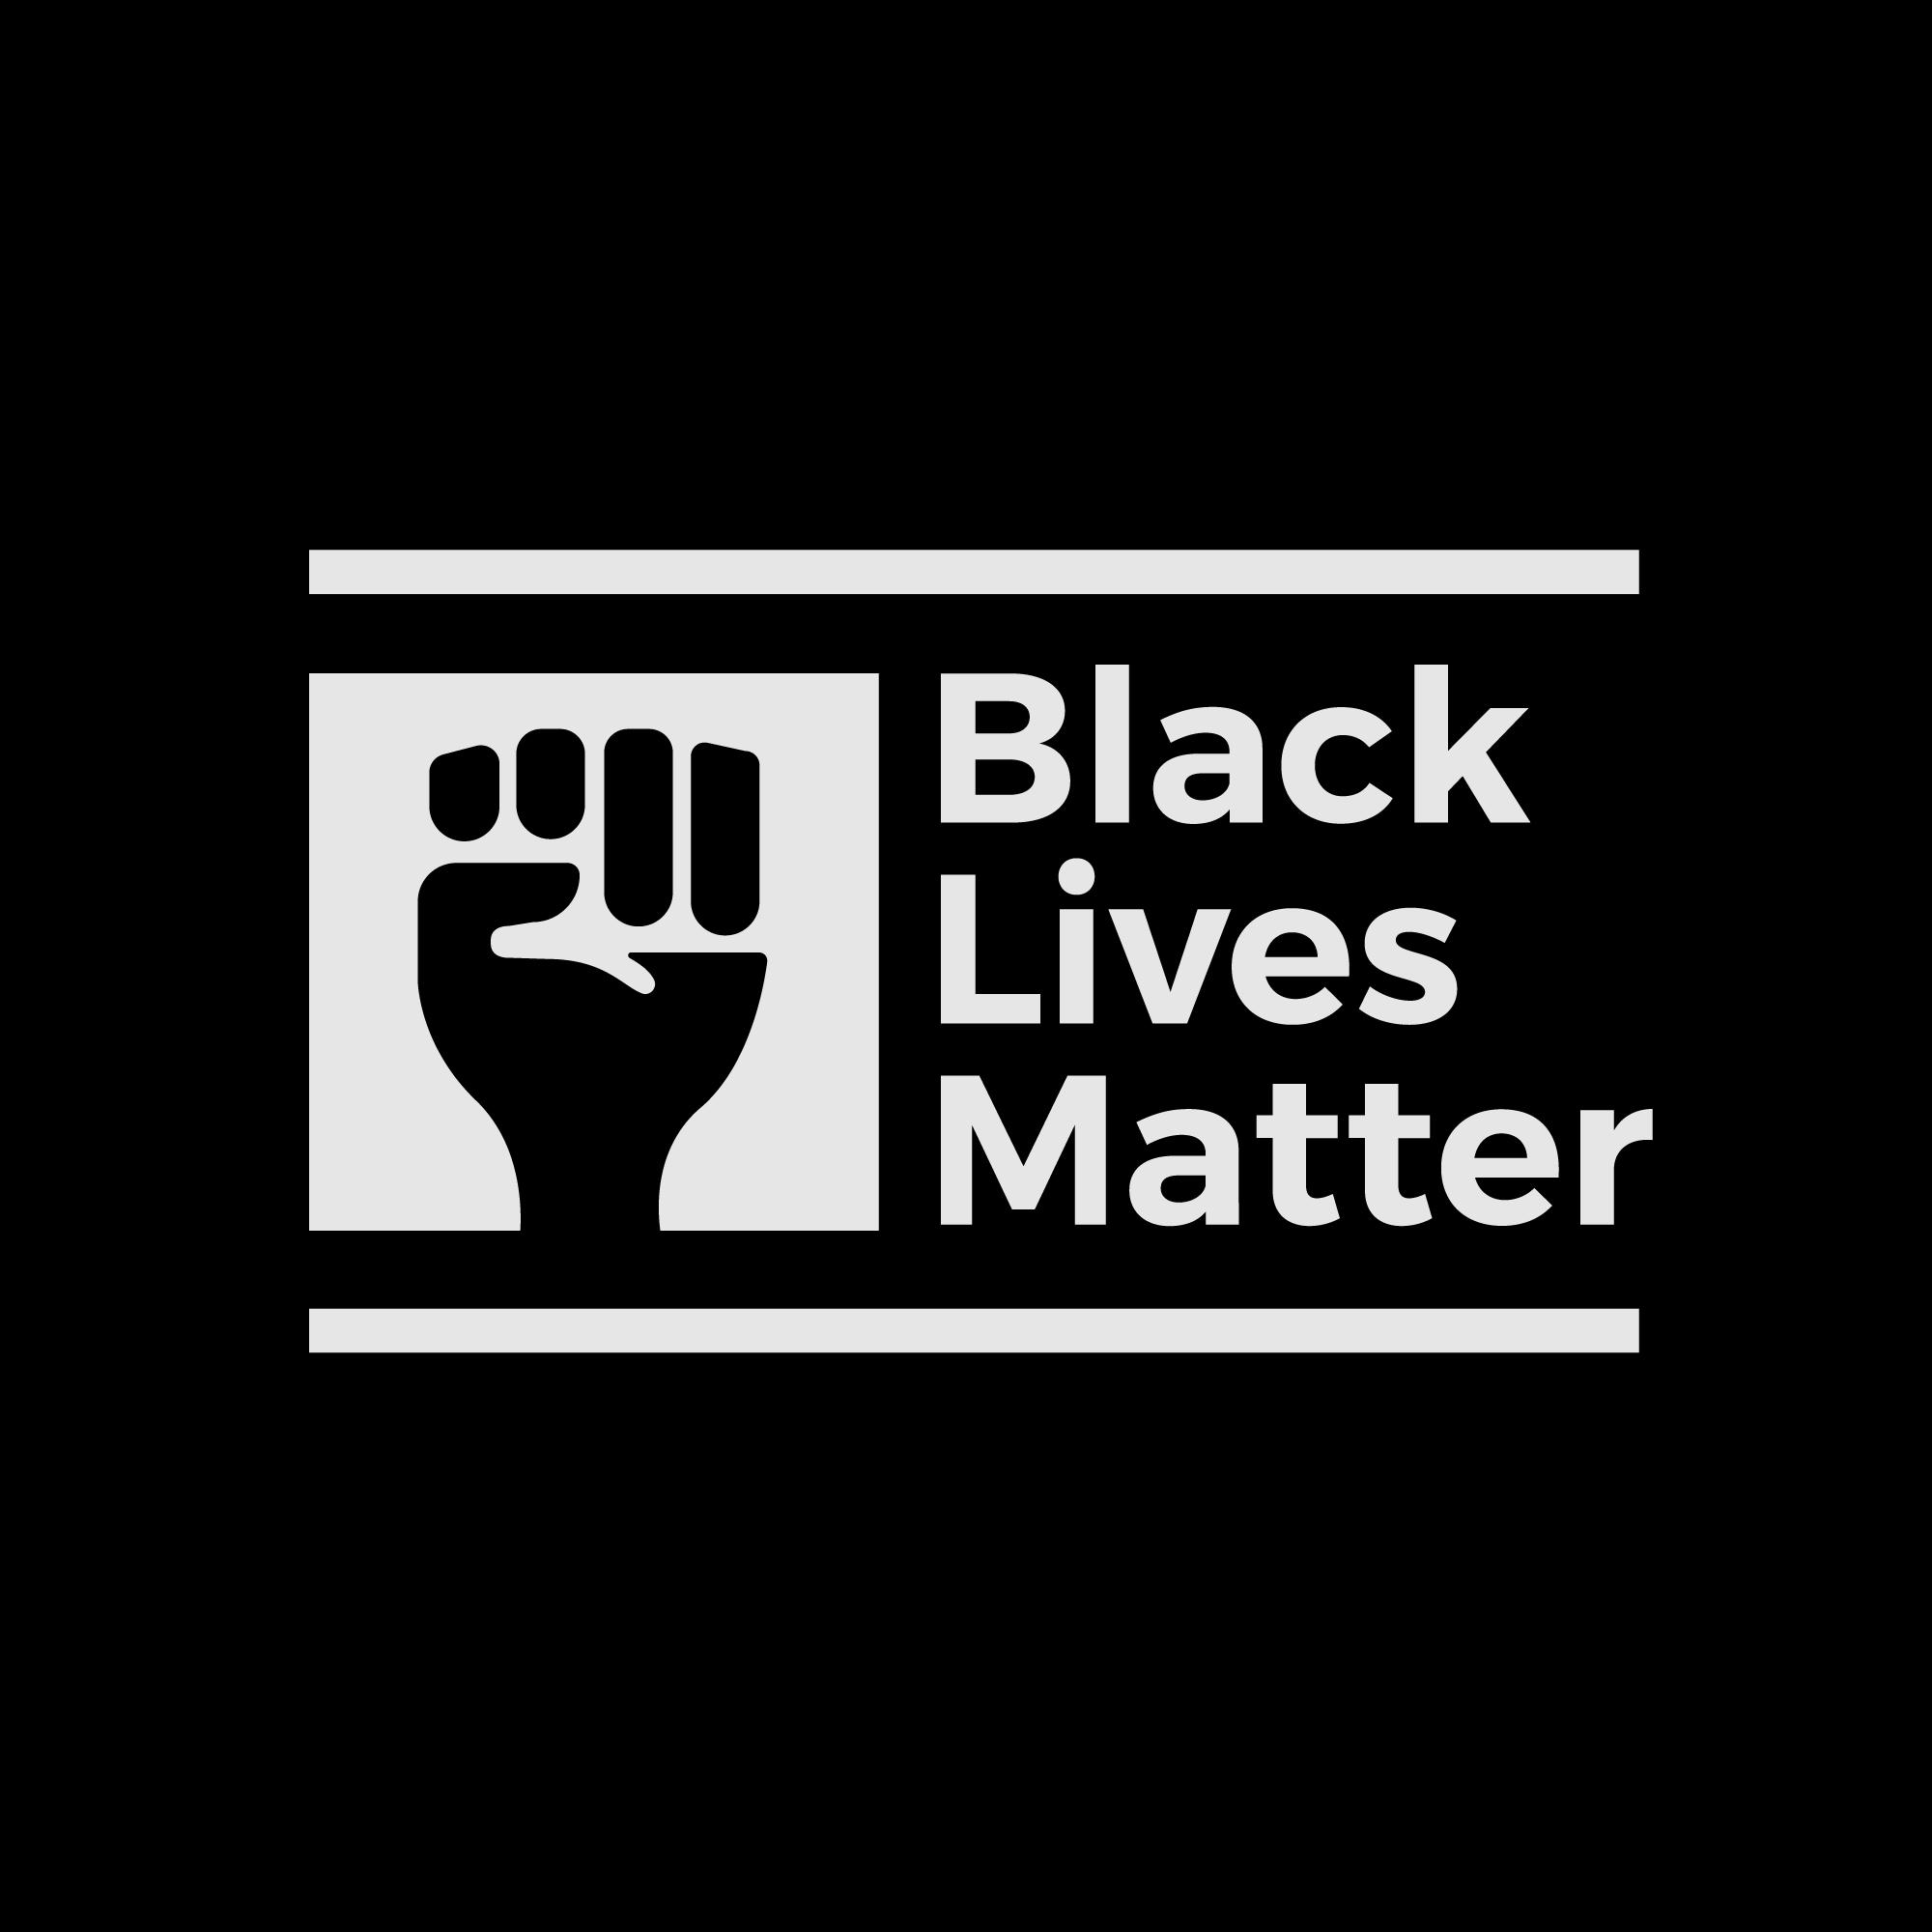 Black Lives Matter Logo and Text